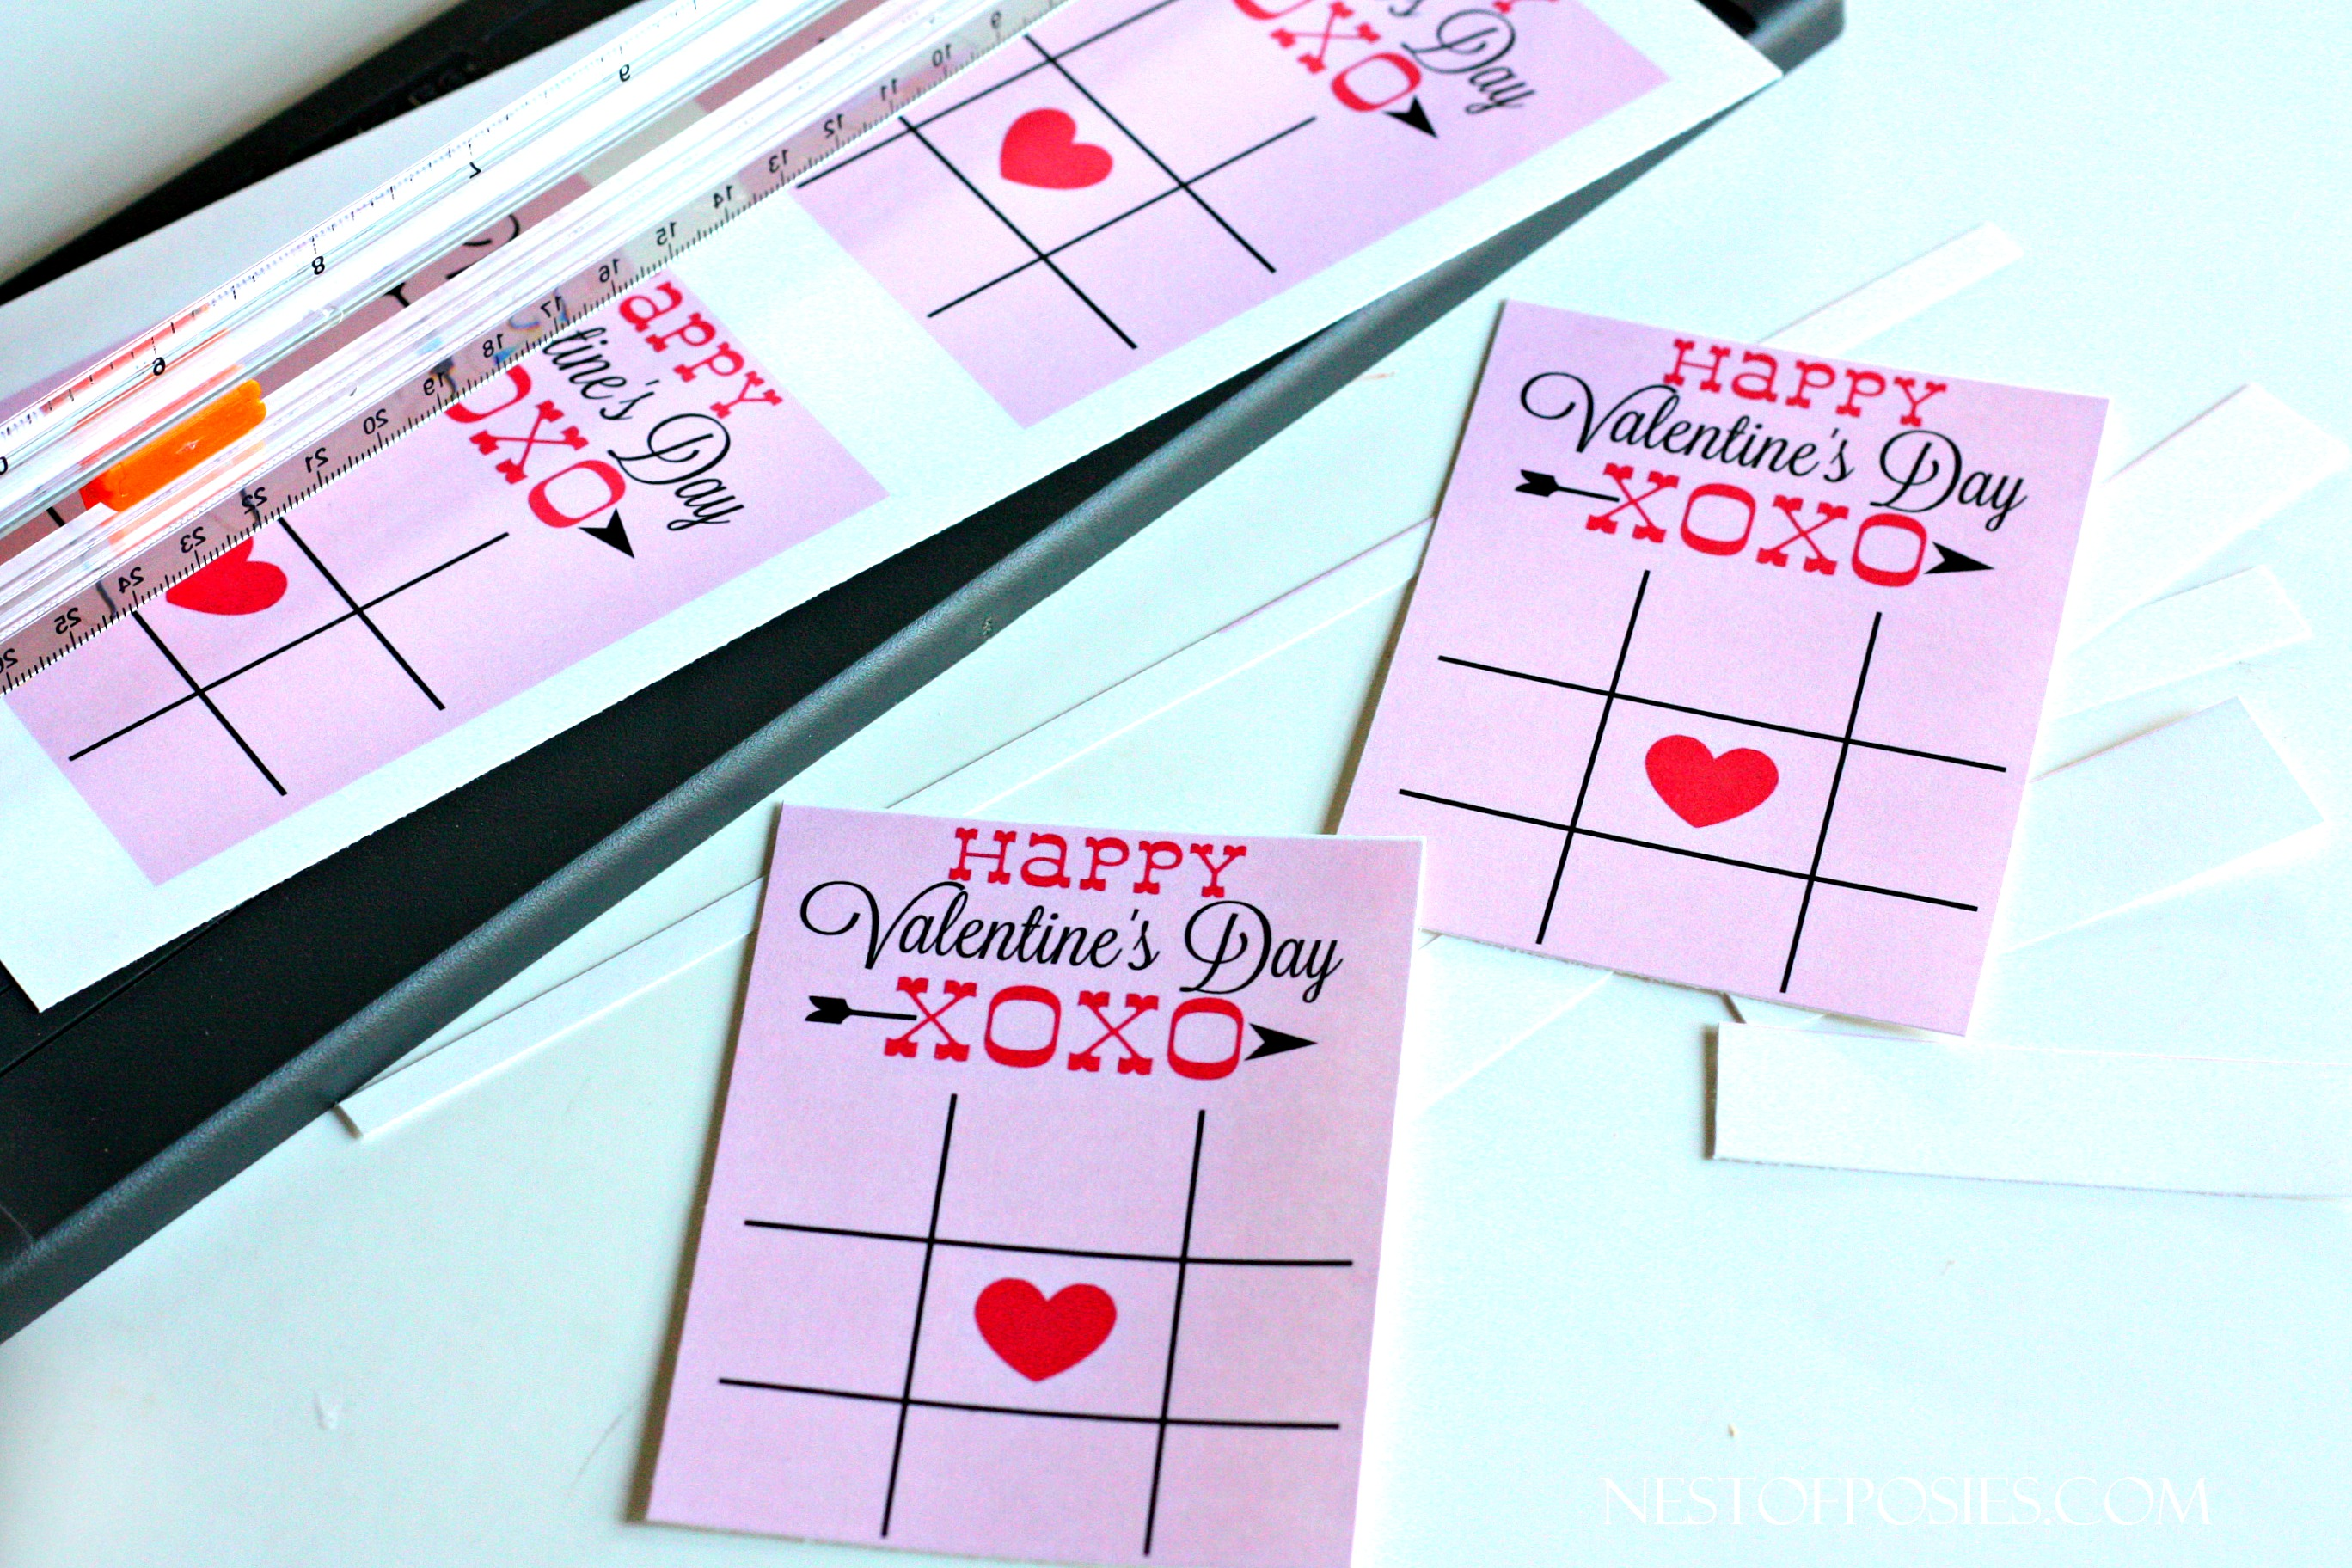 photograph relating to Tic Tac Toe Valentine Printable named XOXO Valentines Working day Playing cards